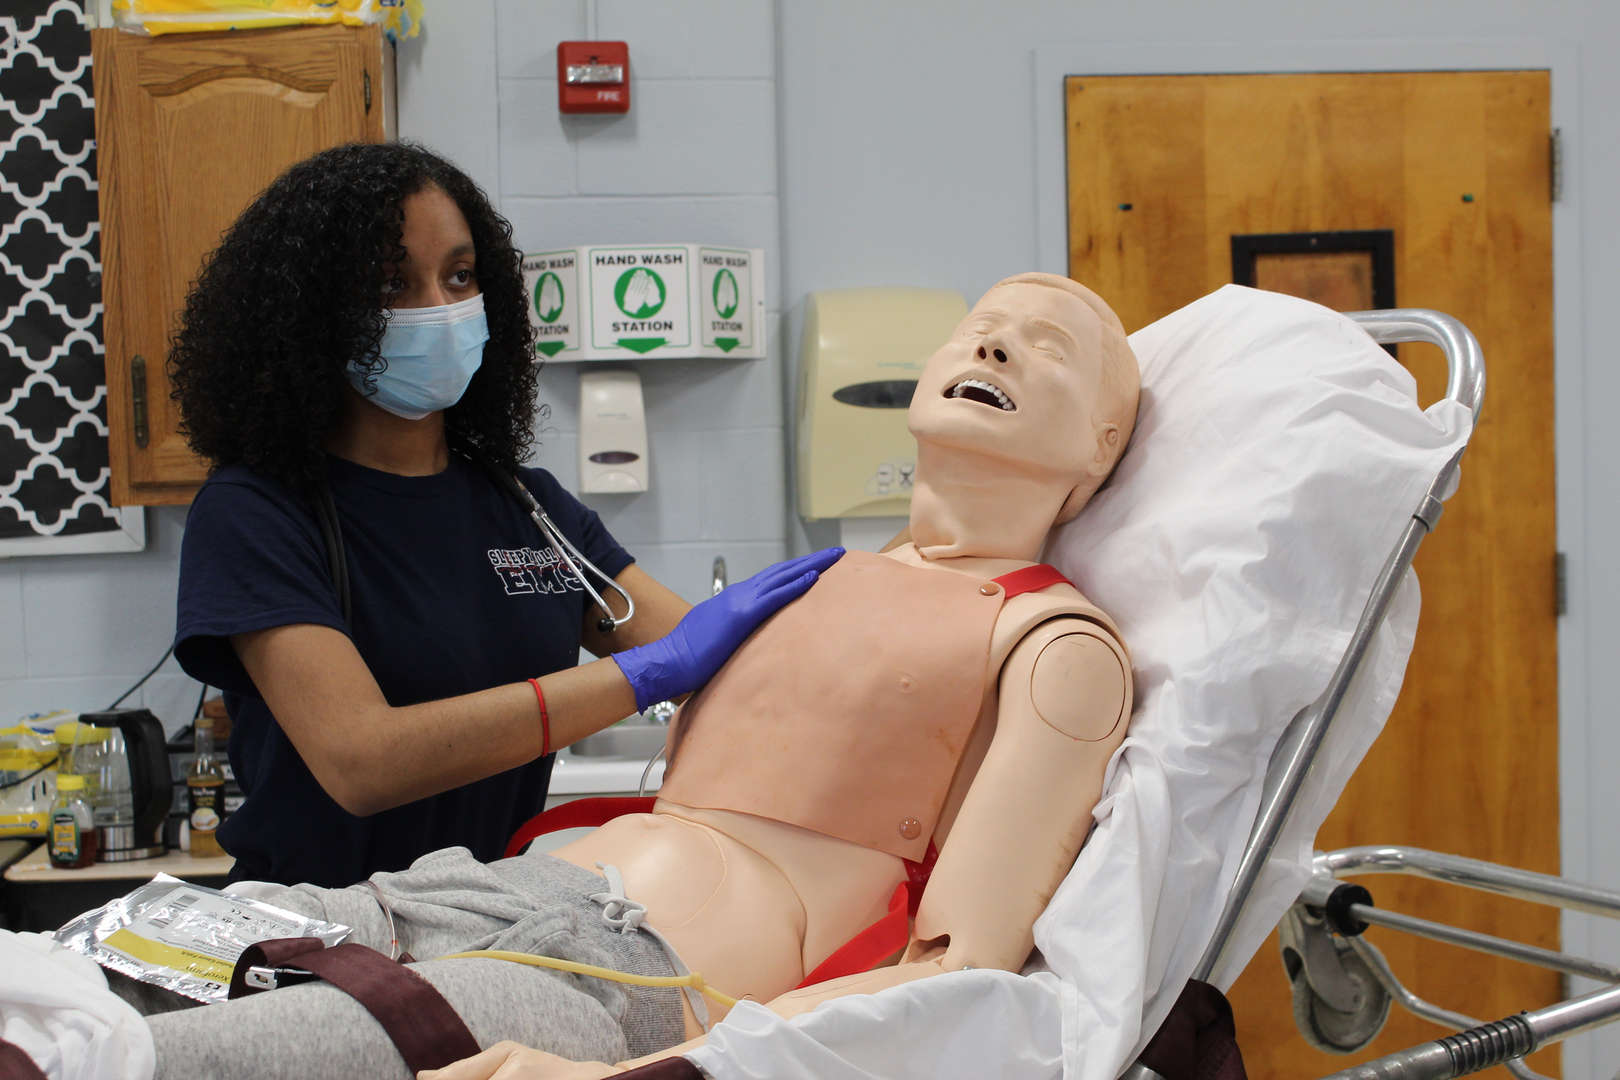 Student provides first aid to a dummy